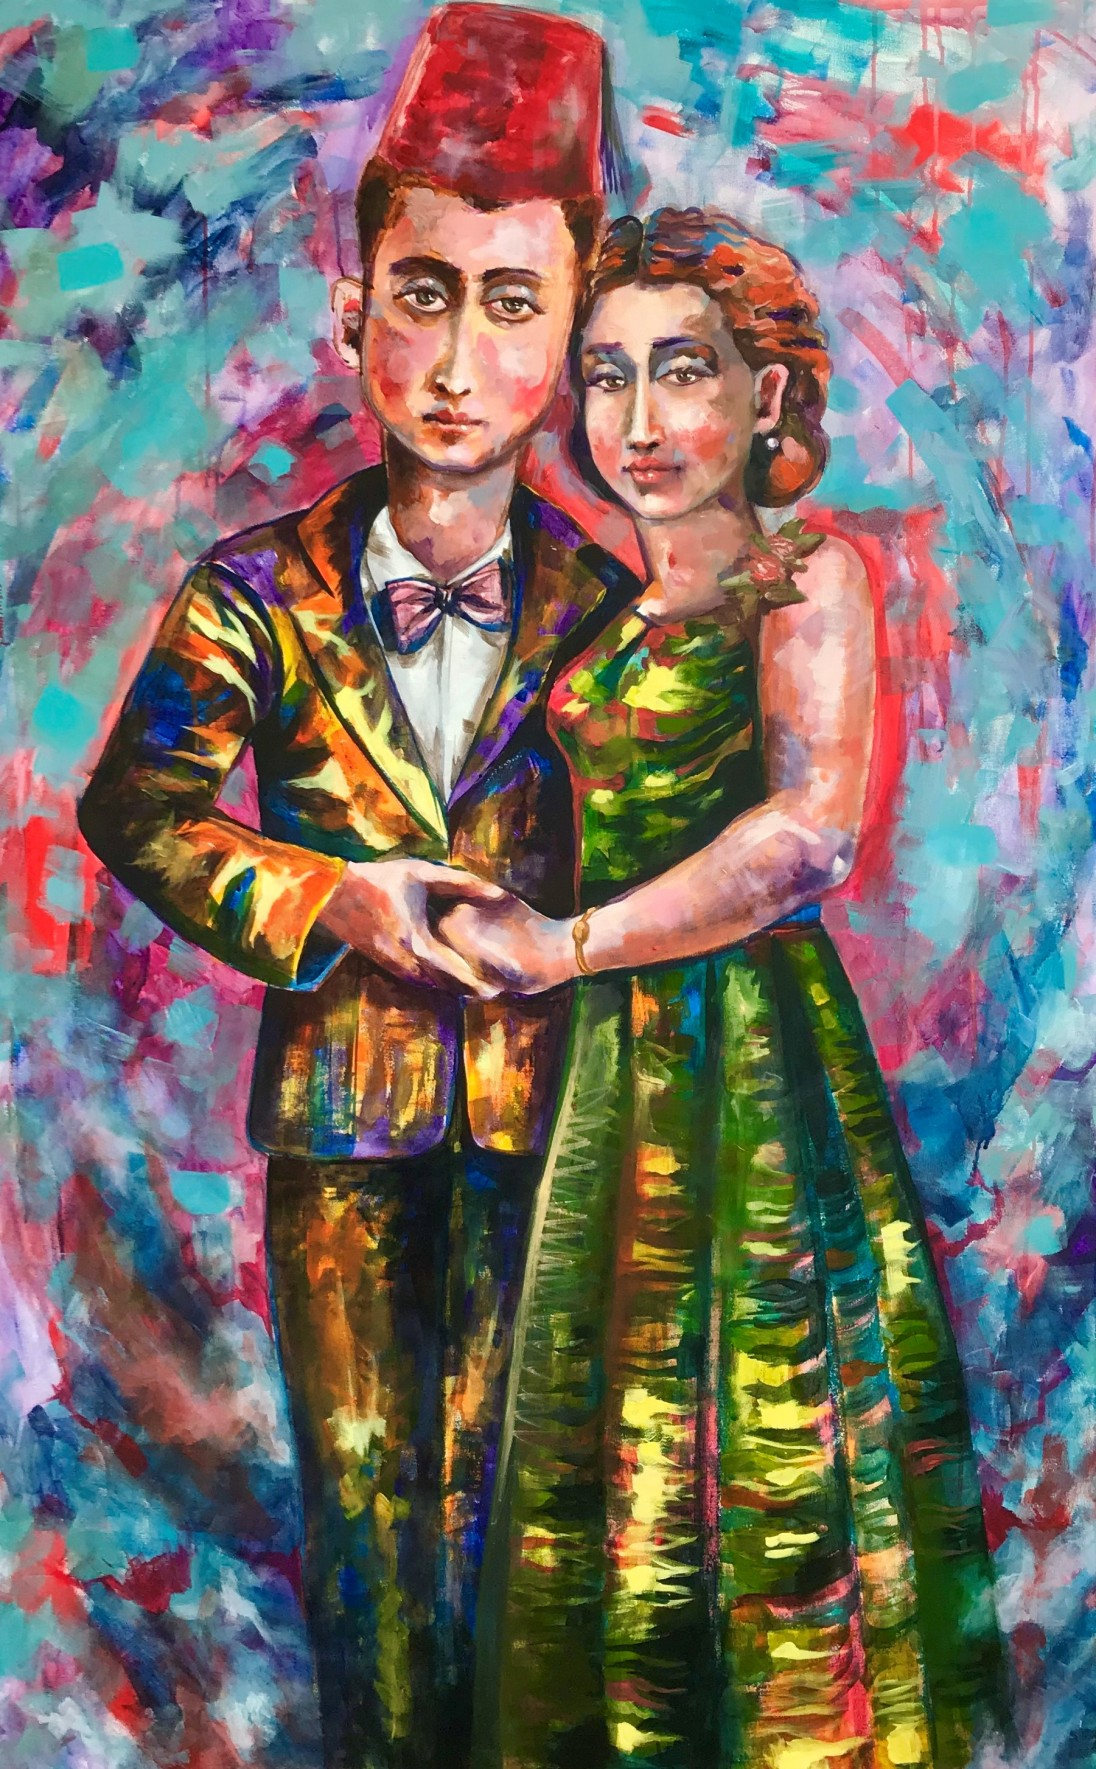 ST012 Samer Tarabichi « From Iskandaroun to Paris ... with love » Tribute to gramma and grappa 100x160 cm Acrylic and oil on canvas